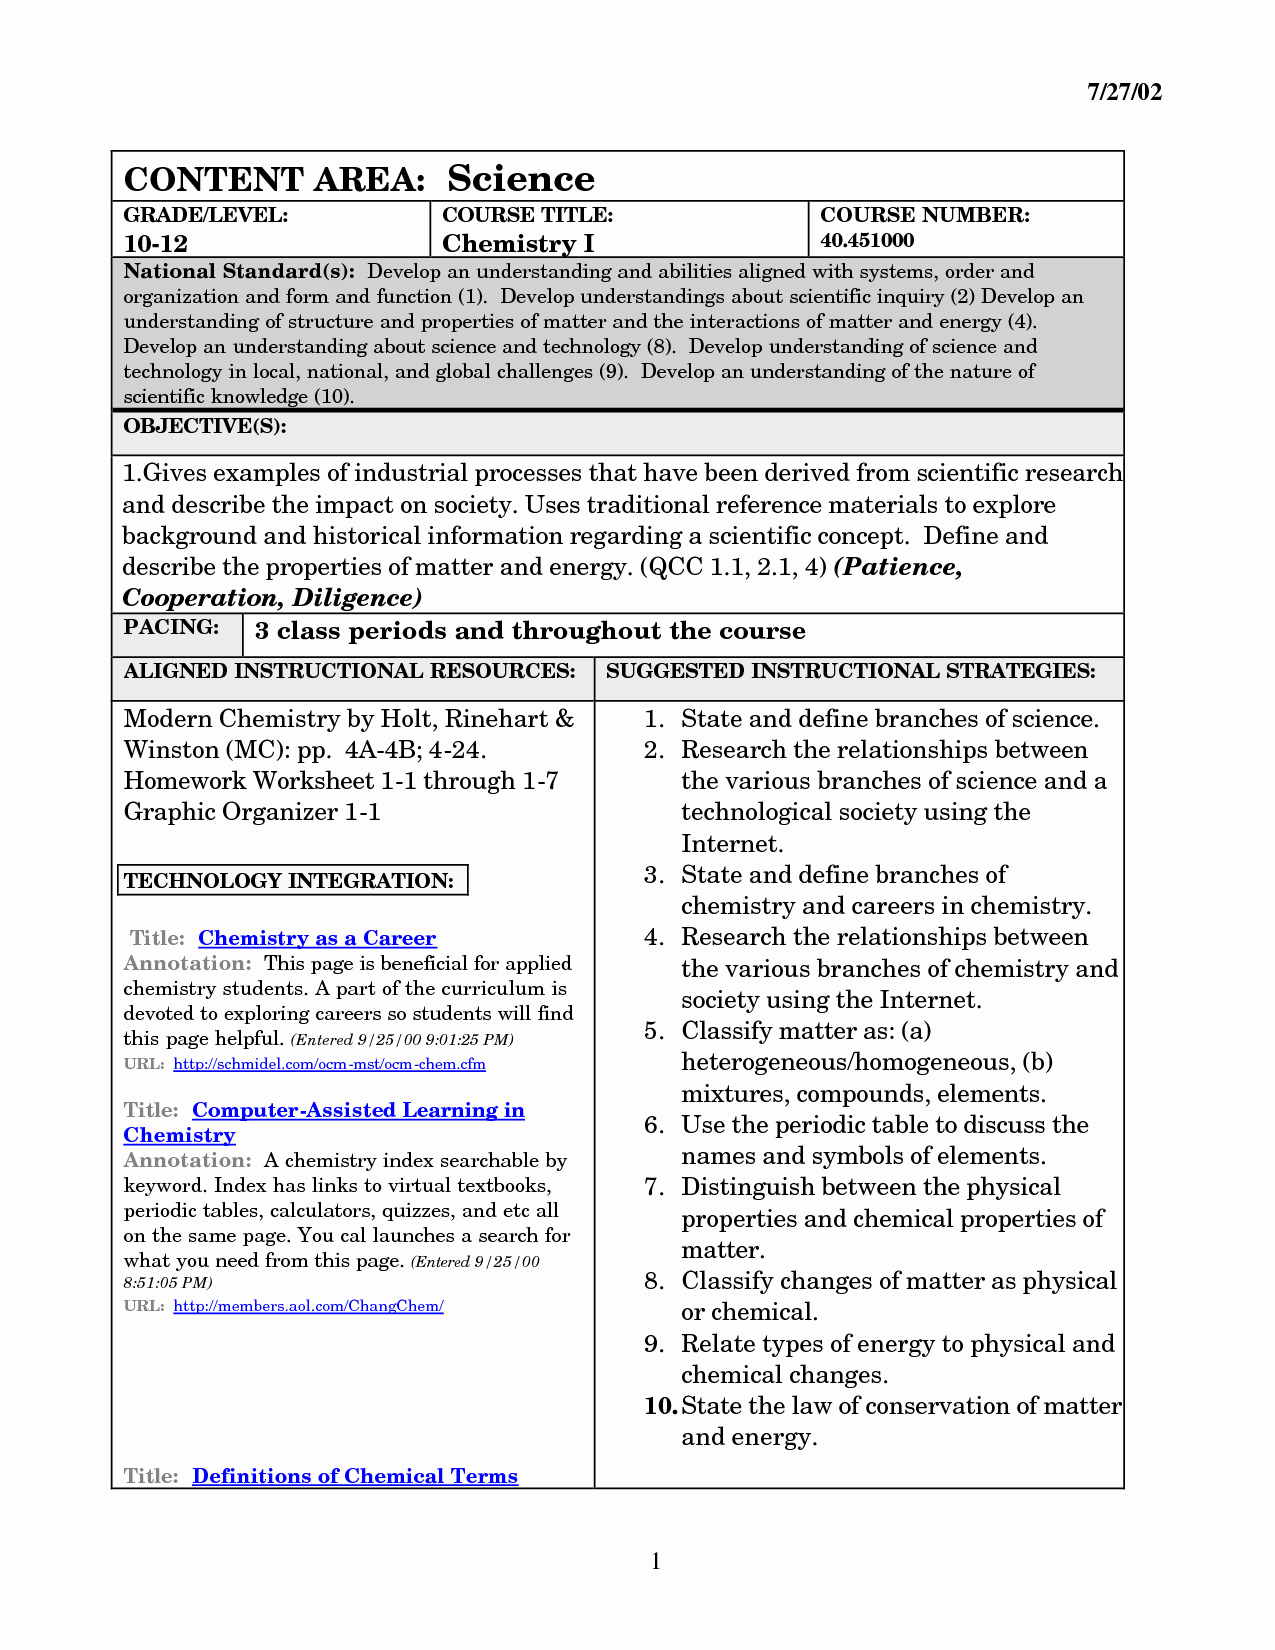 50 Nuclear Decay Worksheet Answer Key